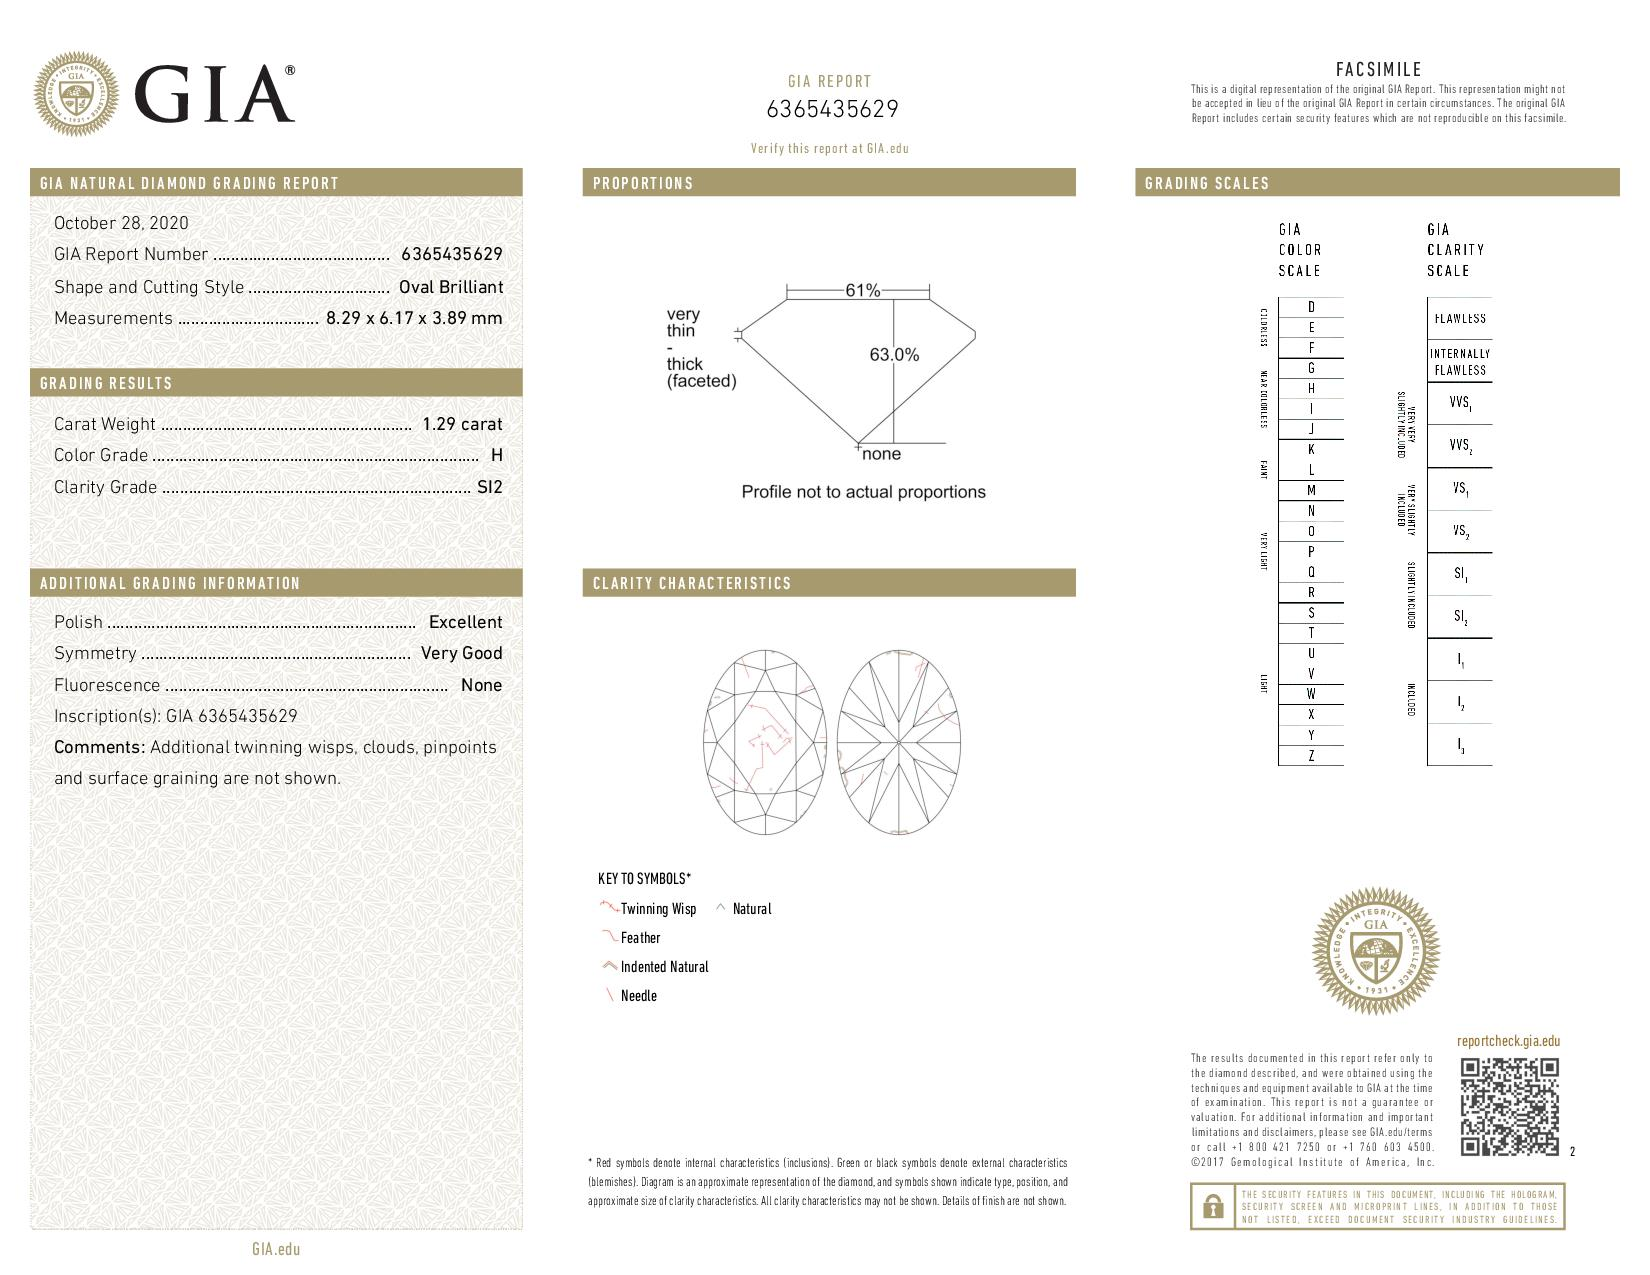 This is a 1.29 carat oval shape, H color, SI2 clarity natural diamond accompanied by a GIA grading report.